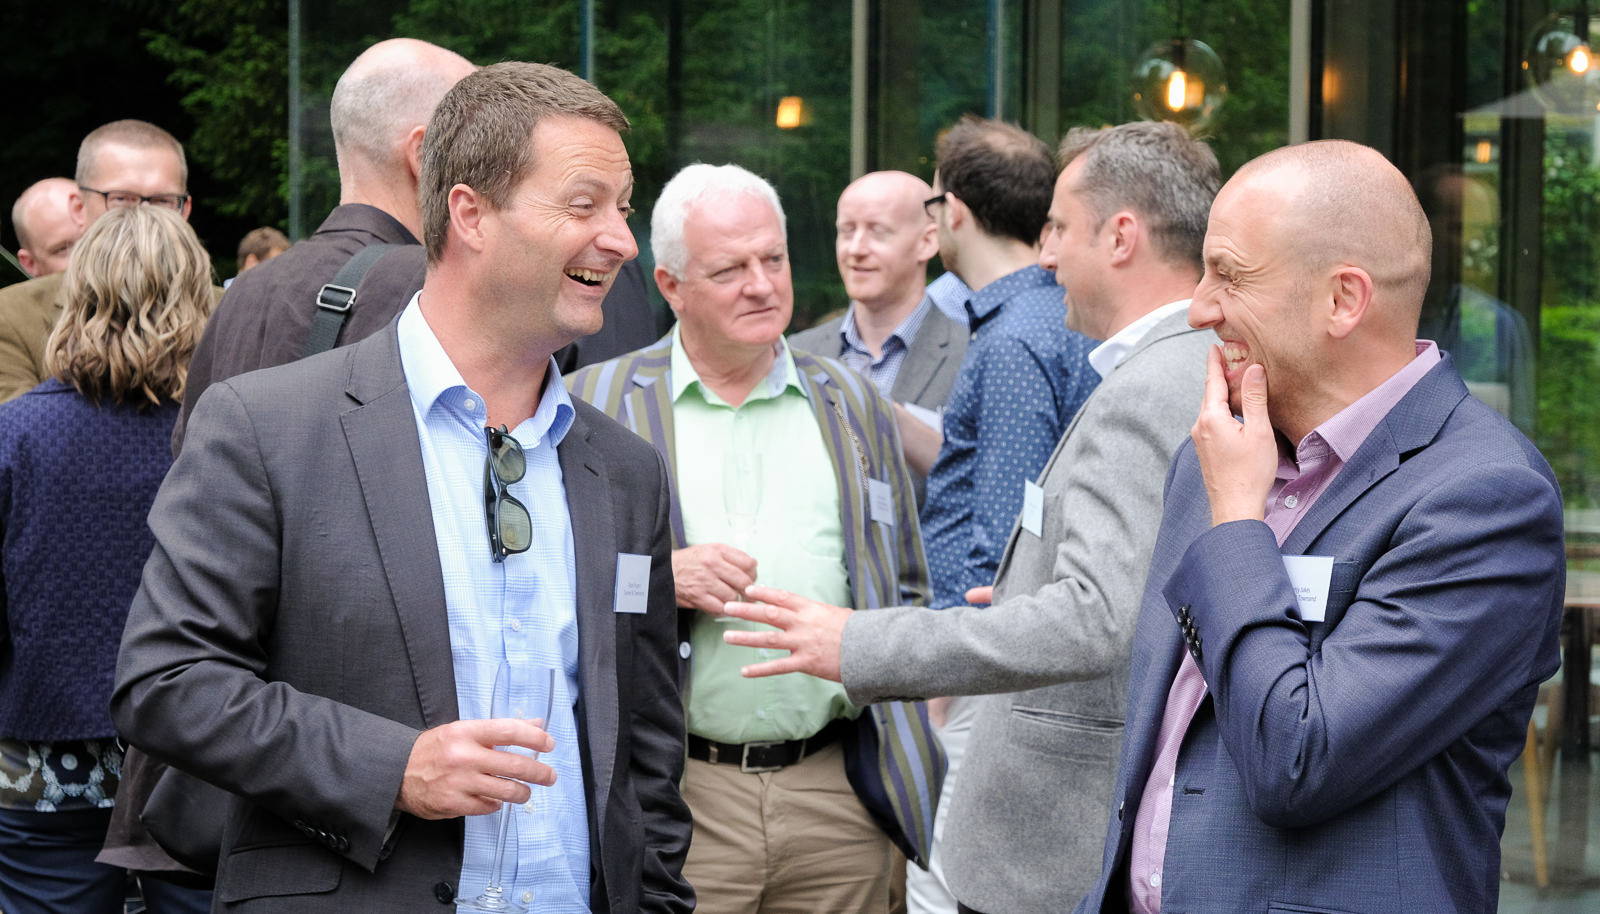 Corporate event photography - men chatting at corporate event at Holborn Museum in Bath